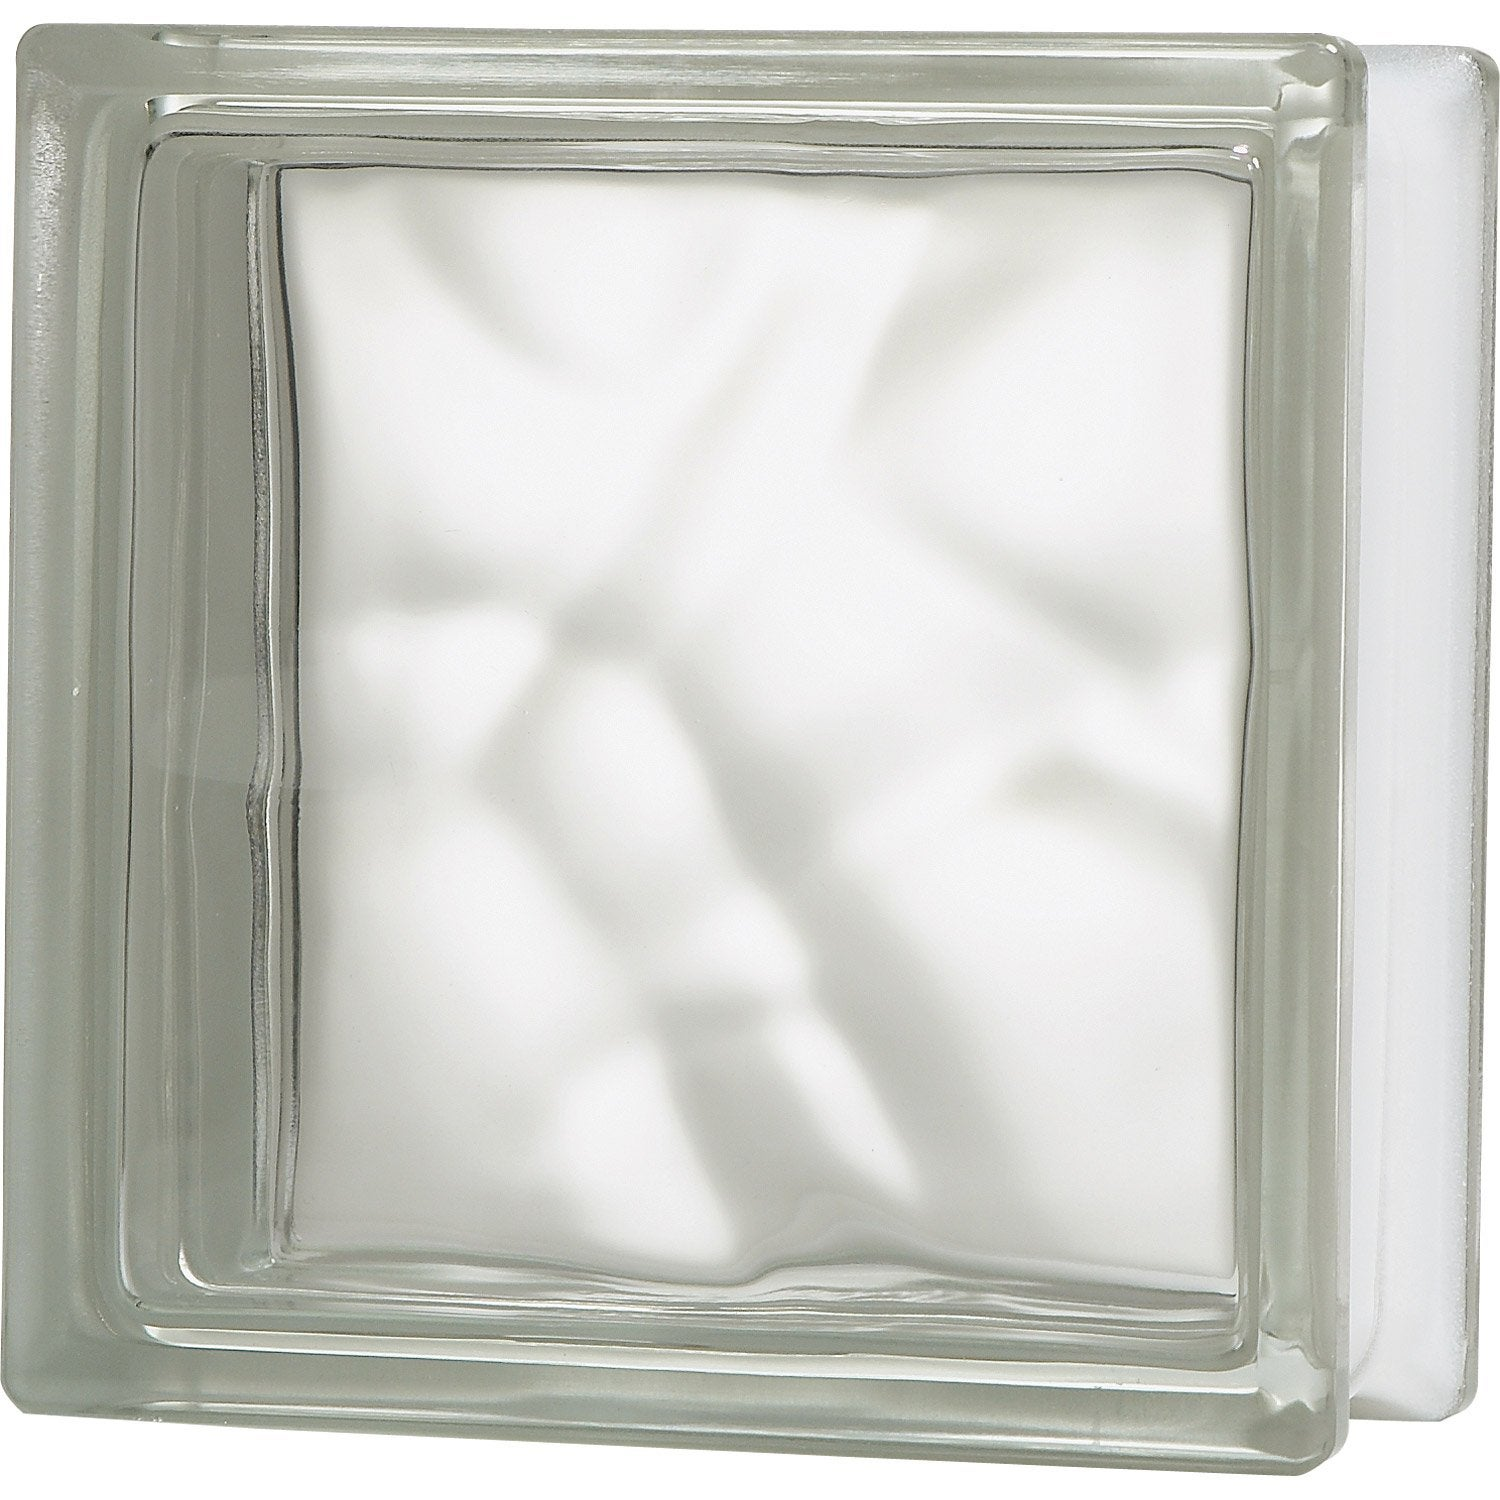 Brique de verre transparent ondul brillant leroy merlin for Pave verre salle de bain